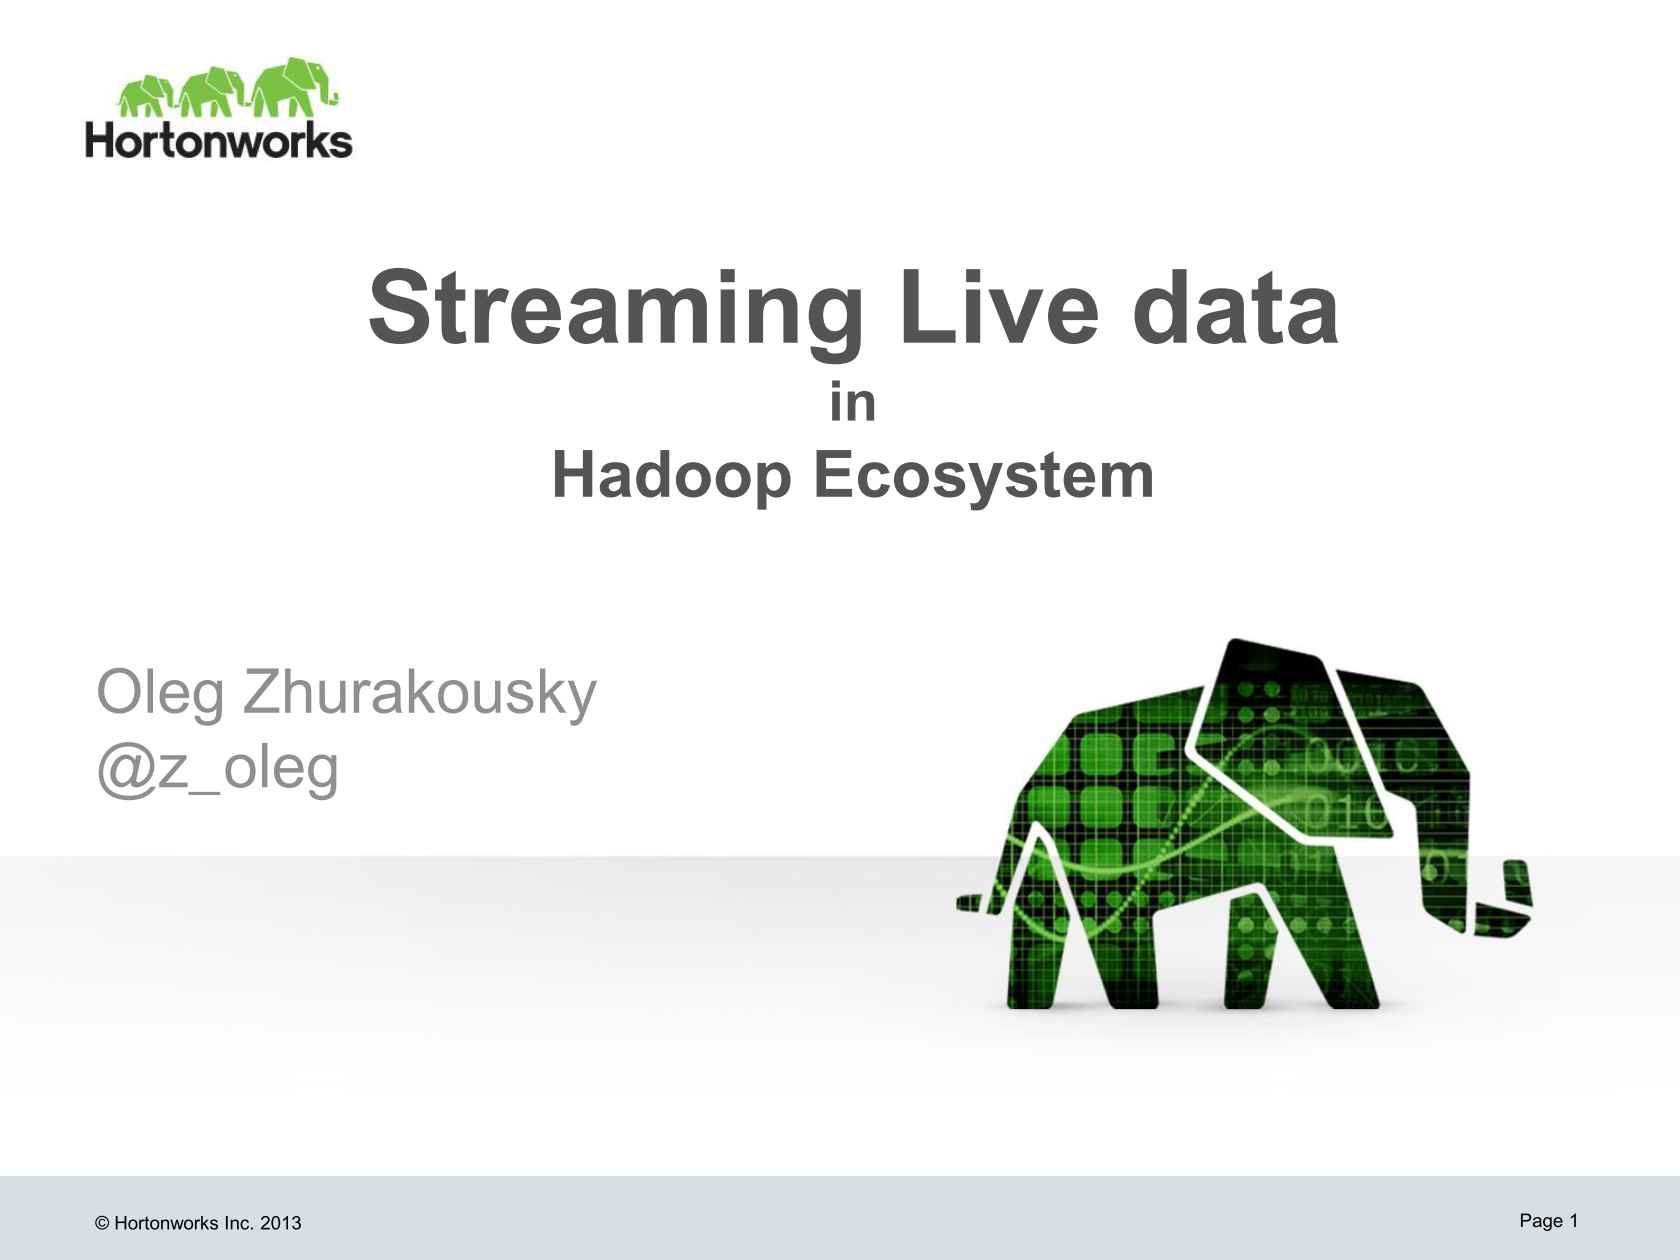 Streaming Live Data and the Hadoop Ecosystem